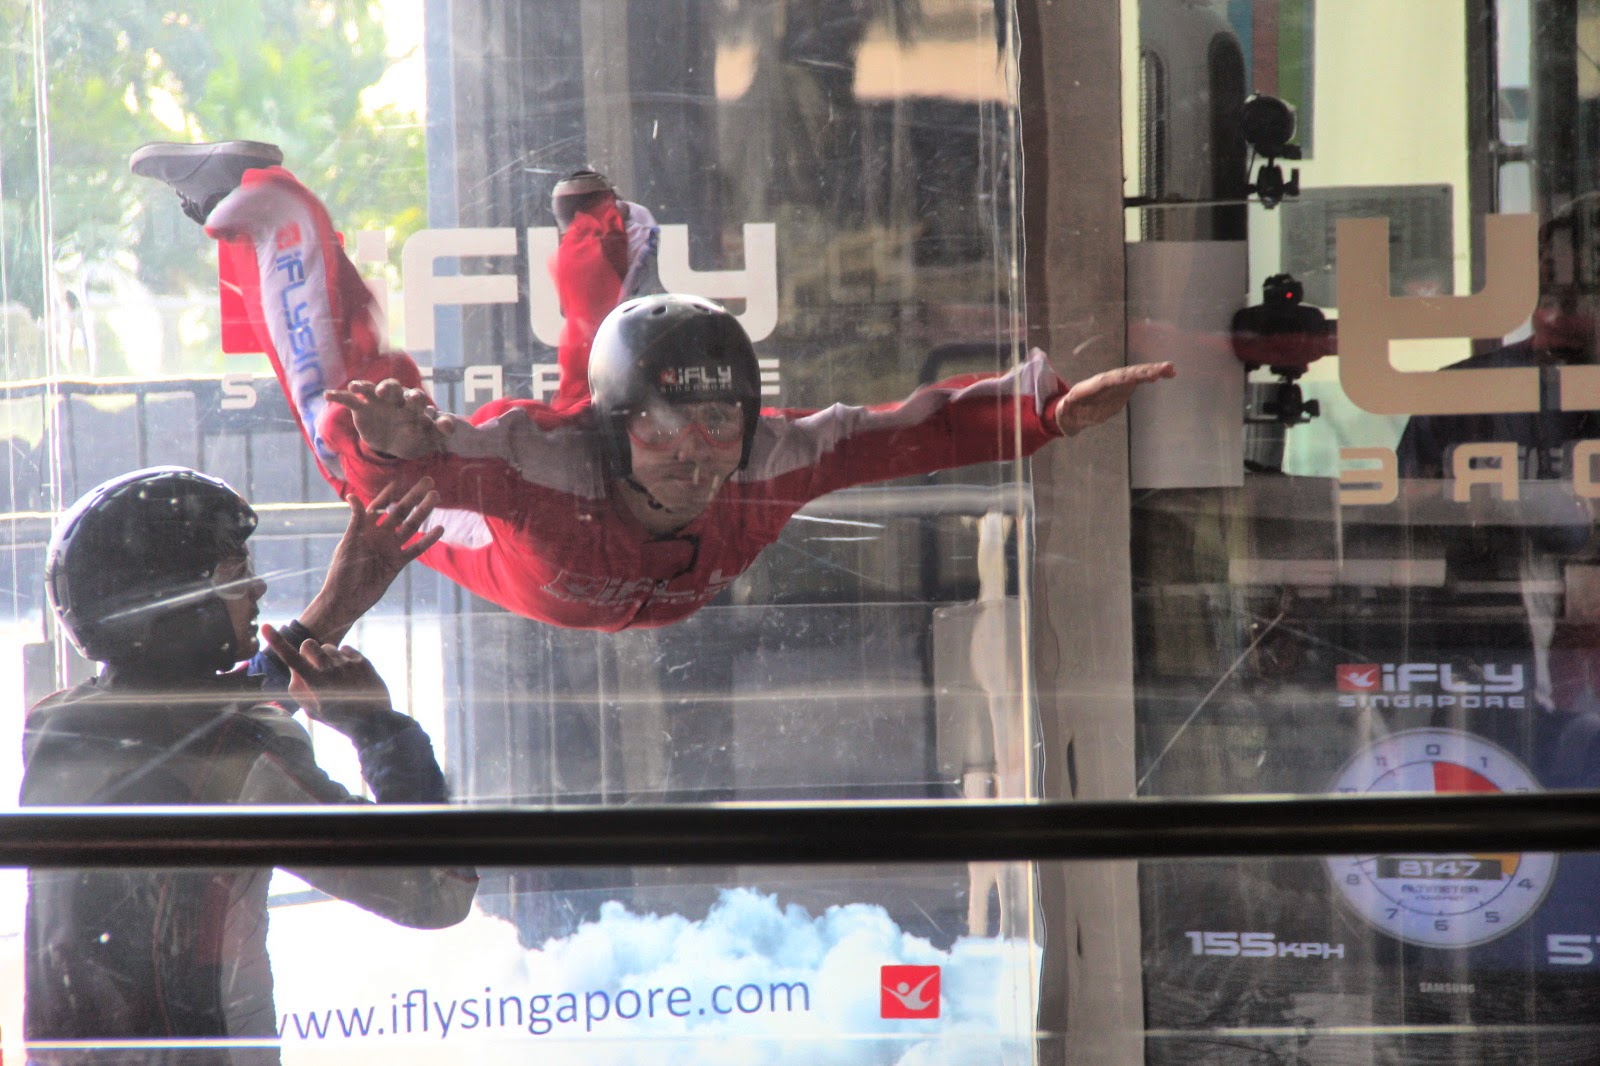 Defying Gravity: Indoor Skydiving in Singapore